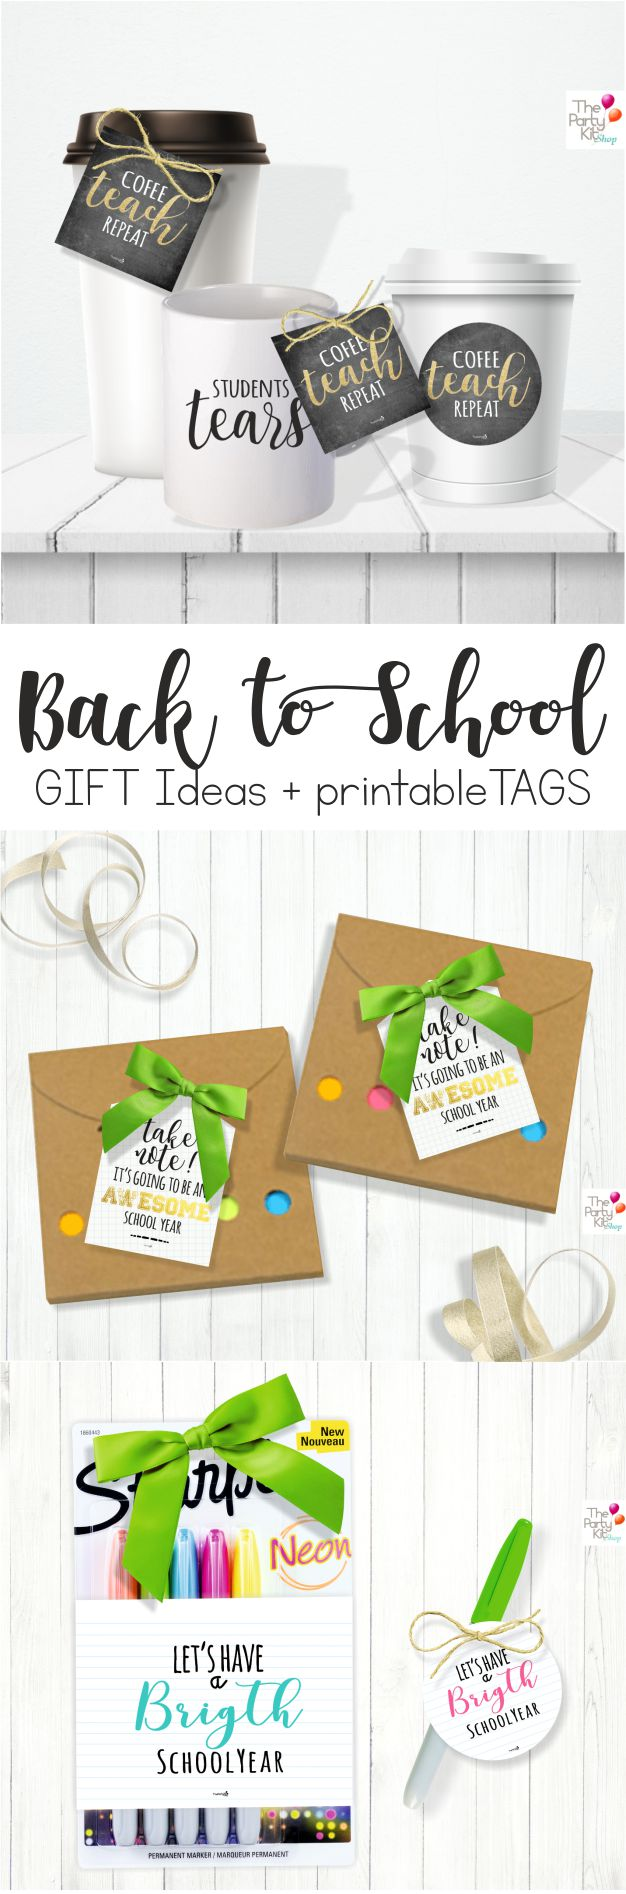 back to school gift ideas